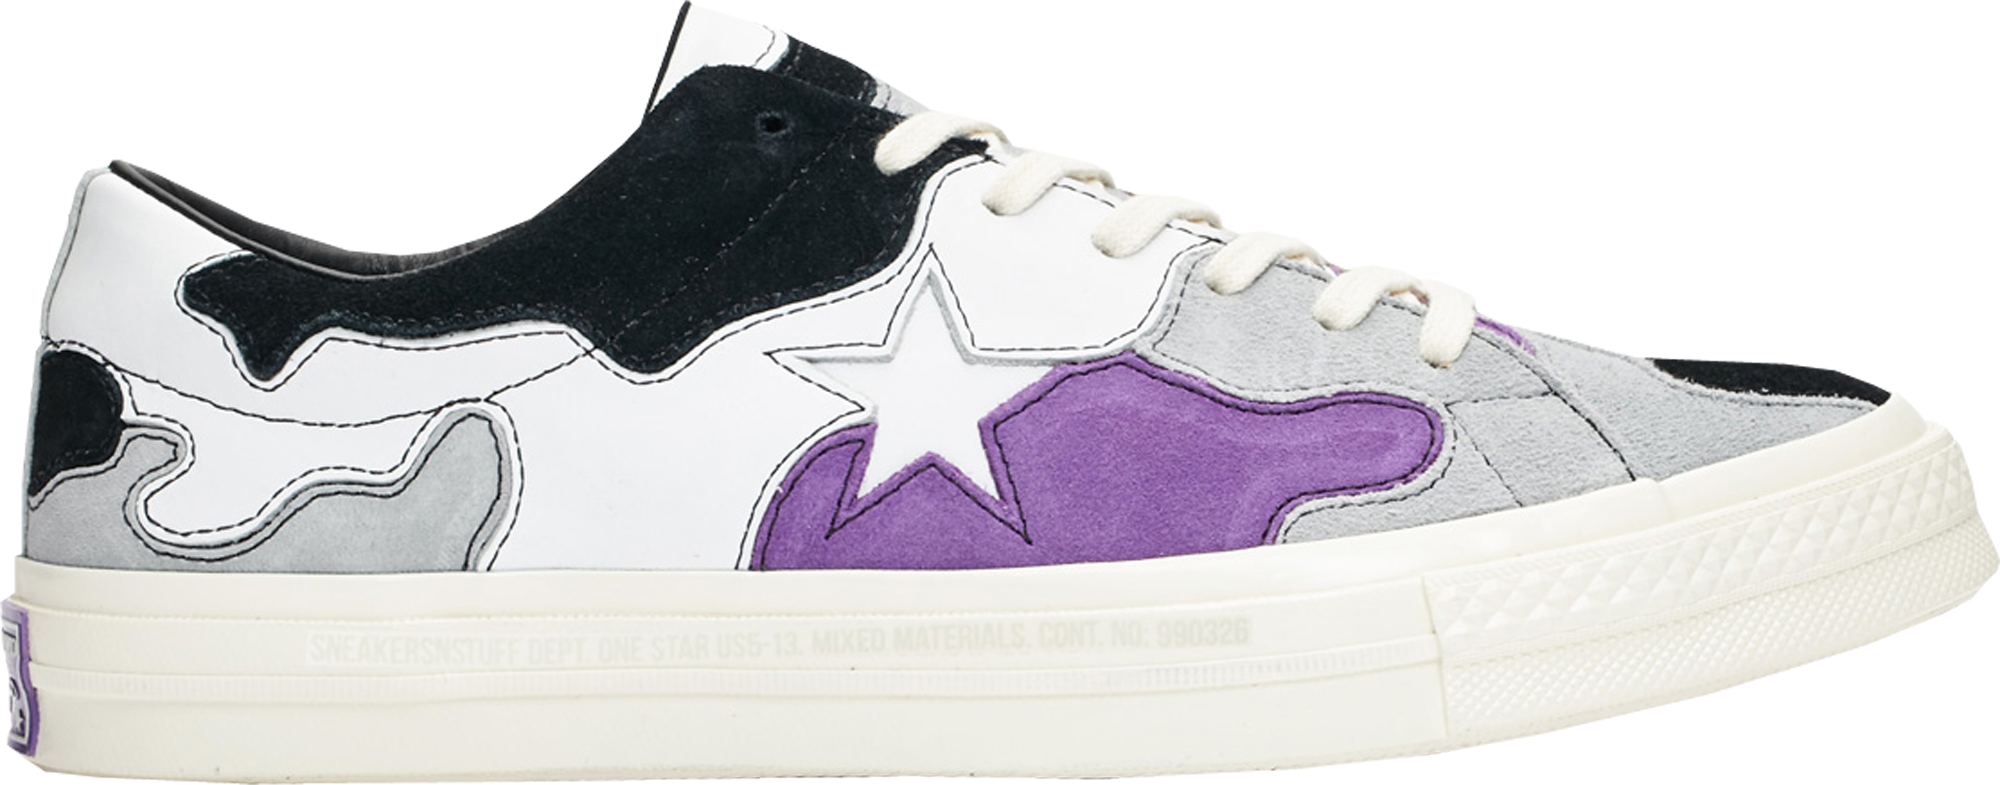 All converse star purple pictures recommendations to wear in summer in 2019